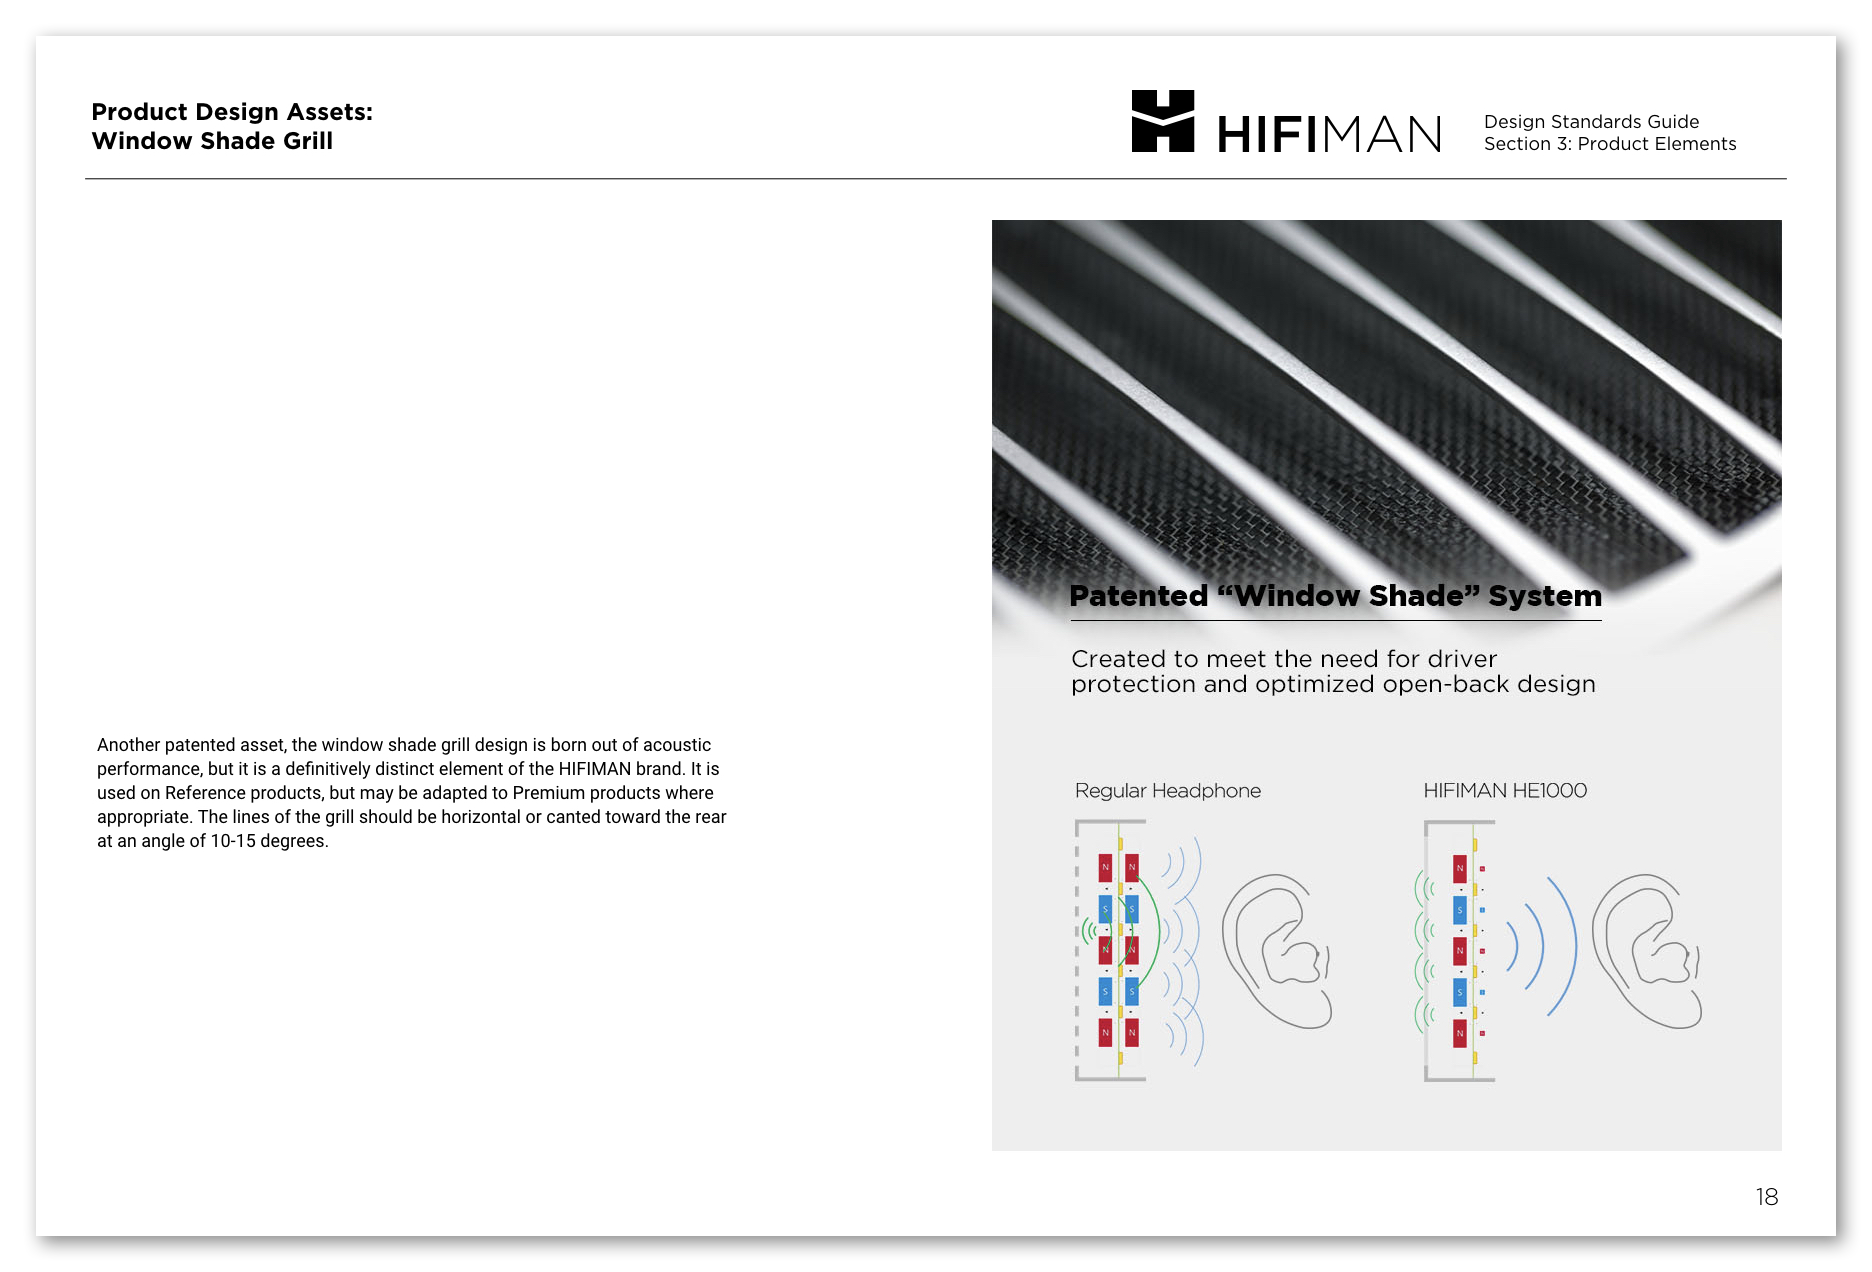 A sample page from the HIFIMAN Design Guide on the Window Shade grill asset.